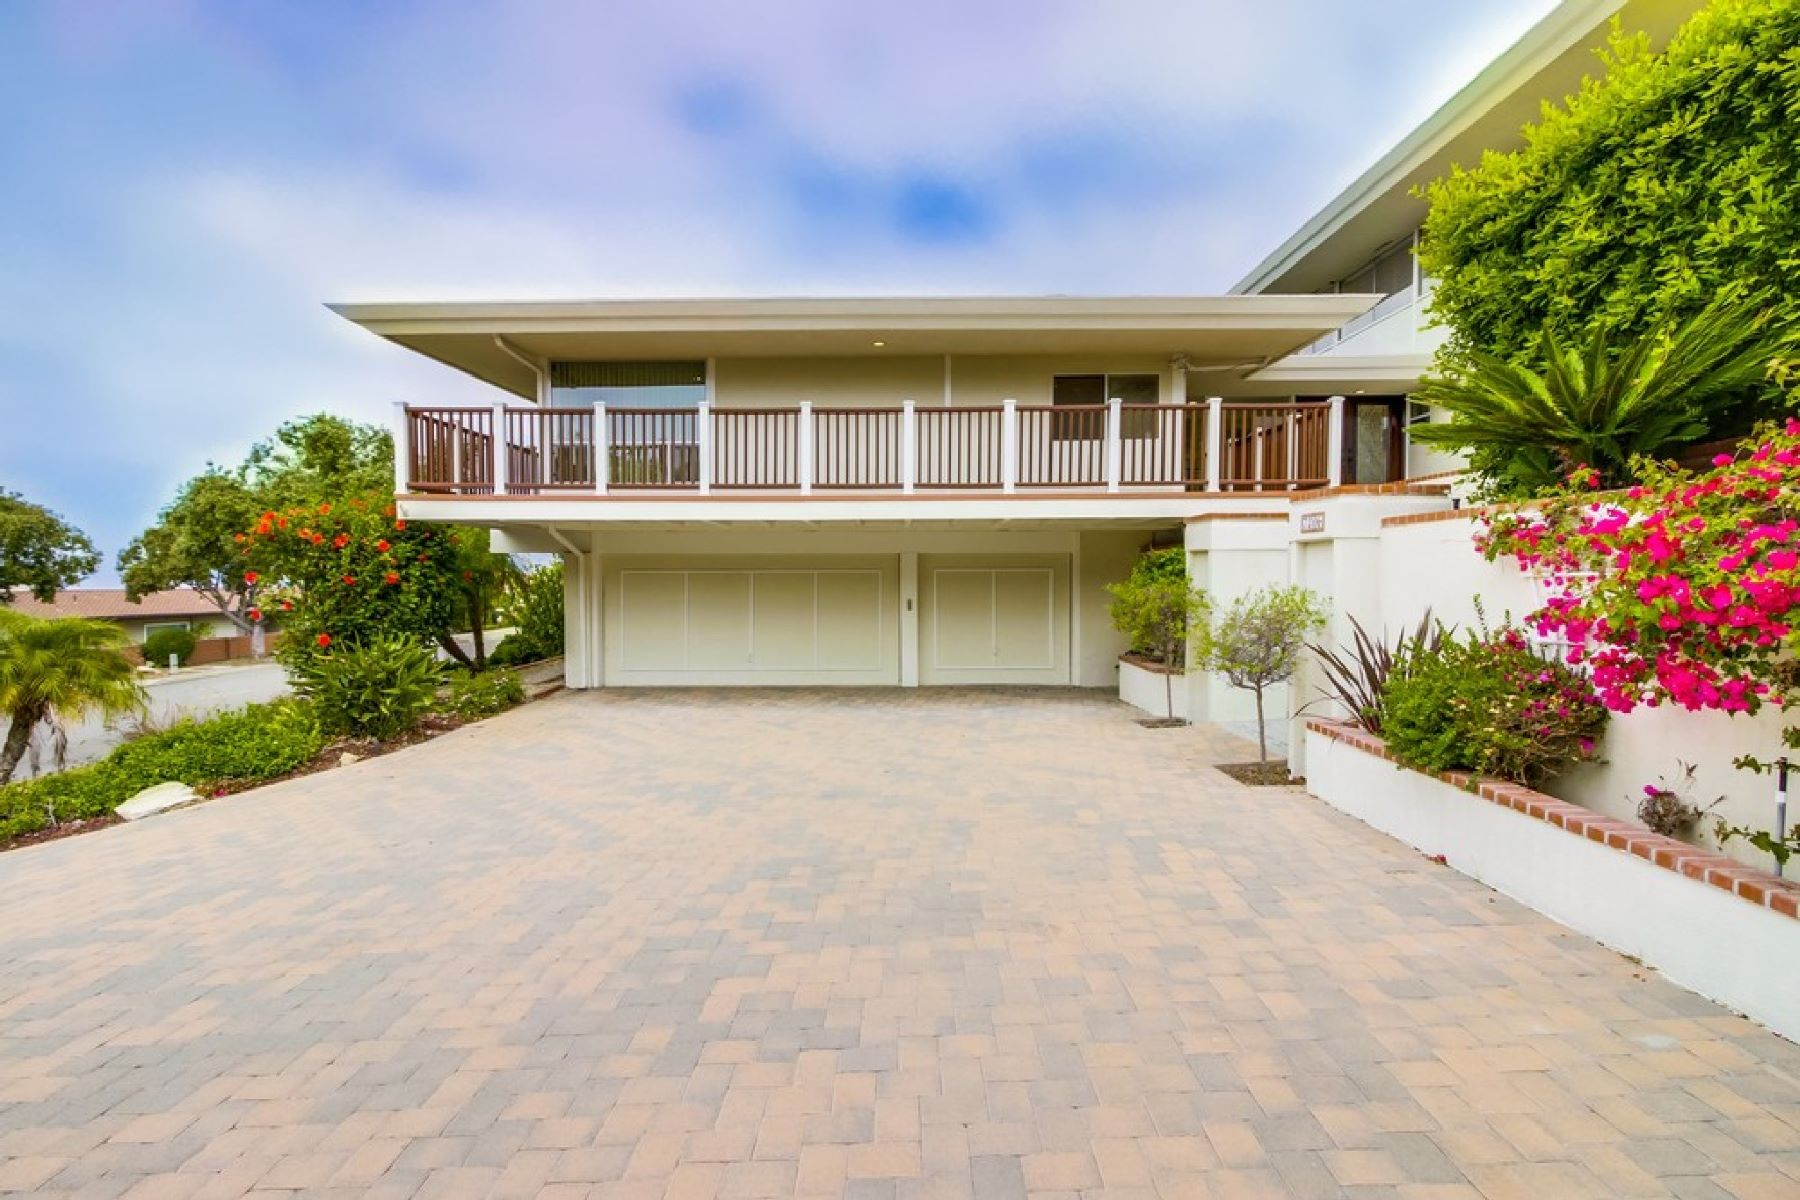 Single Family Home for Sale at 7206 Crest Rd, Rancho Palos Verdes 90275 7206 Crest Road Rancho Palos Verdes, California 90275 United States